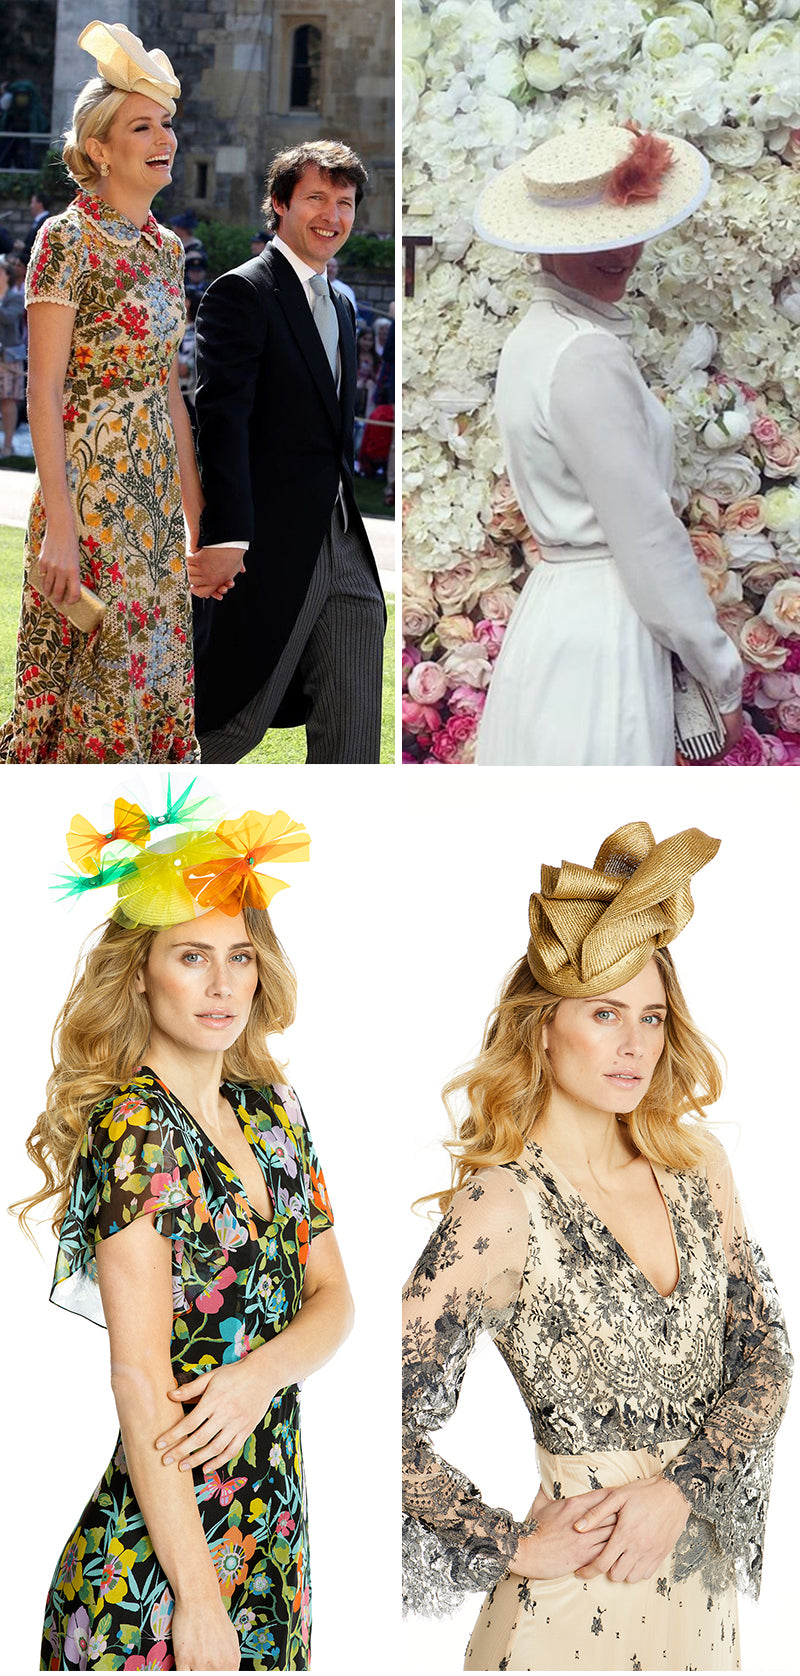 ridleylondon-royal-ascot-blog-image-hats-by-camilla-rose-millinry